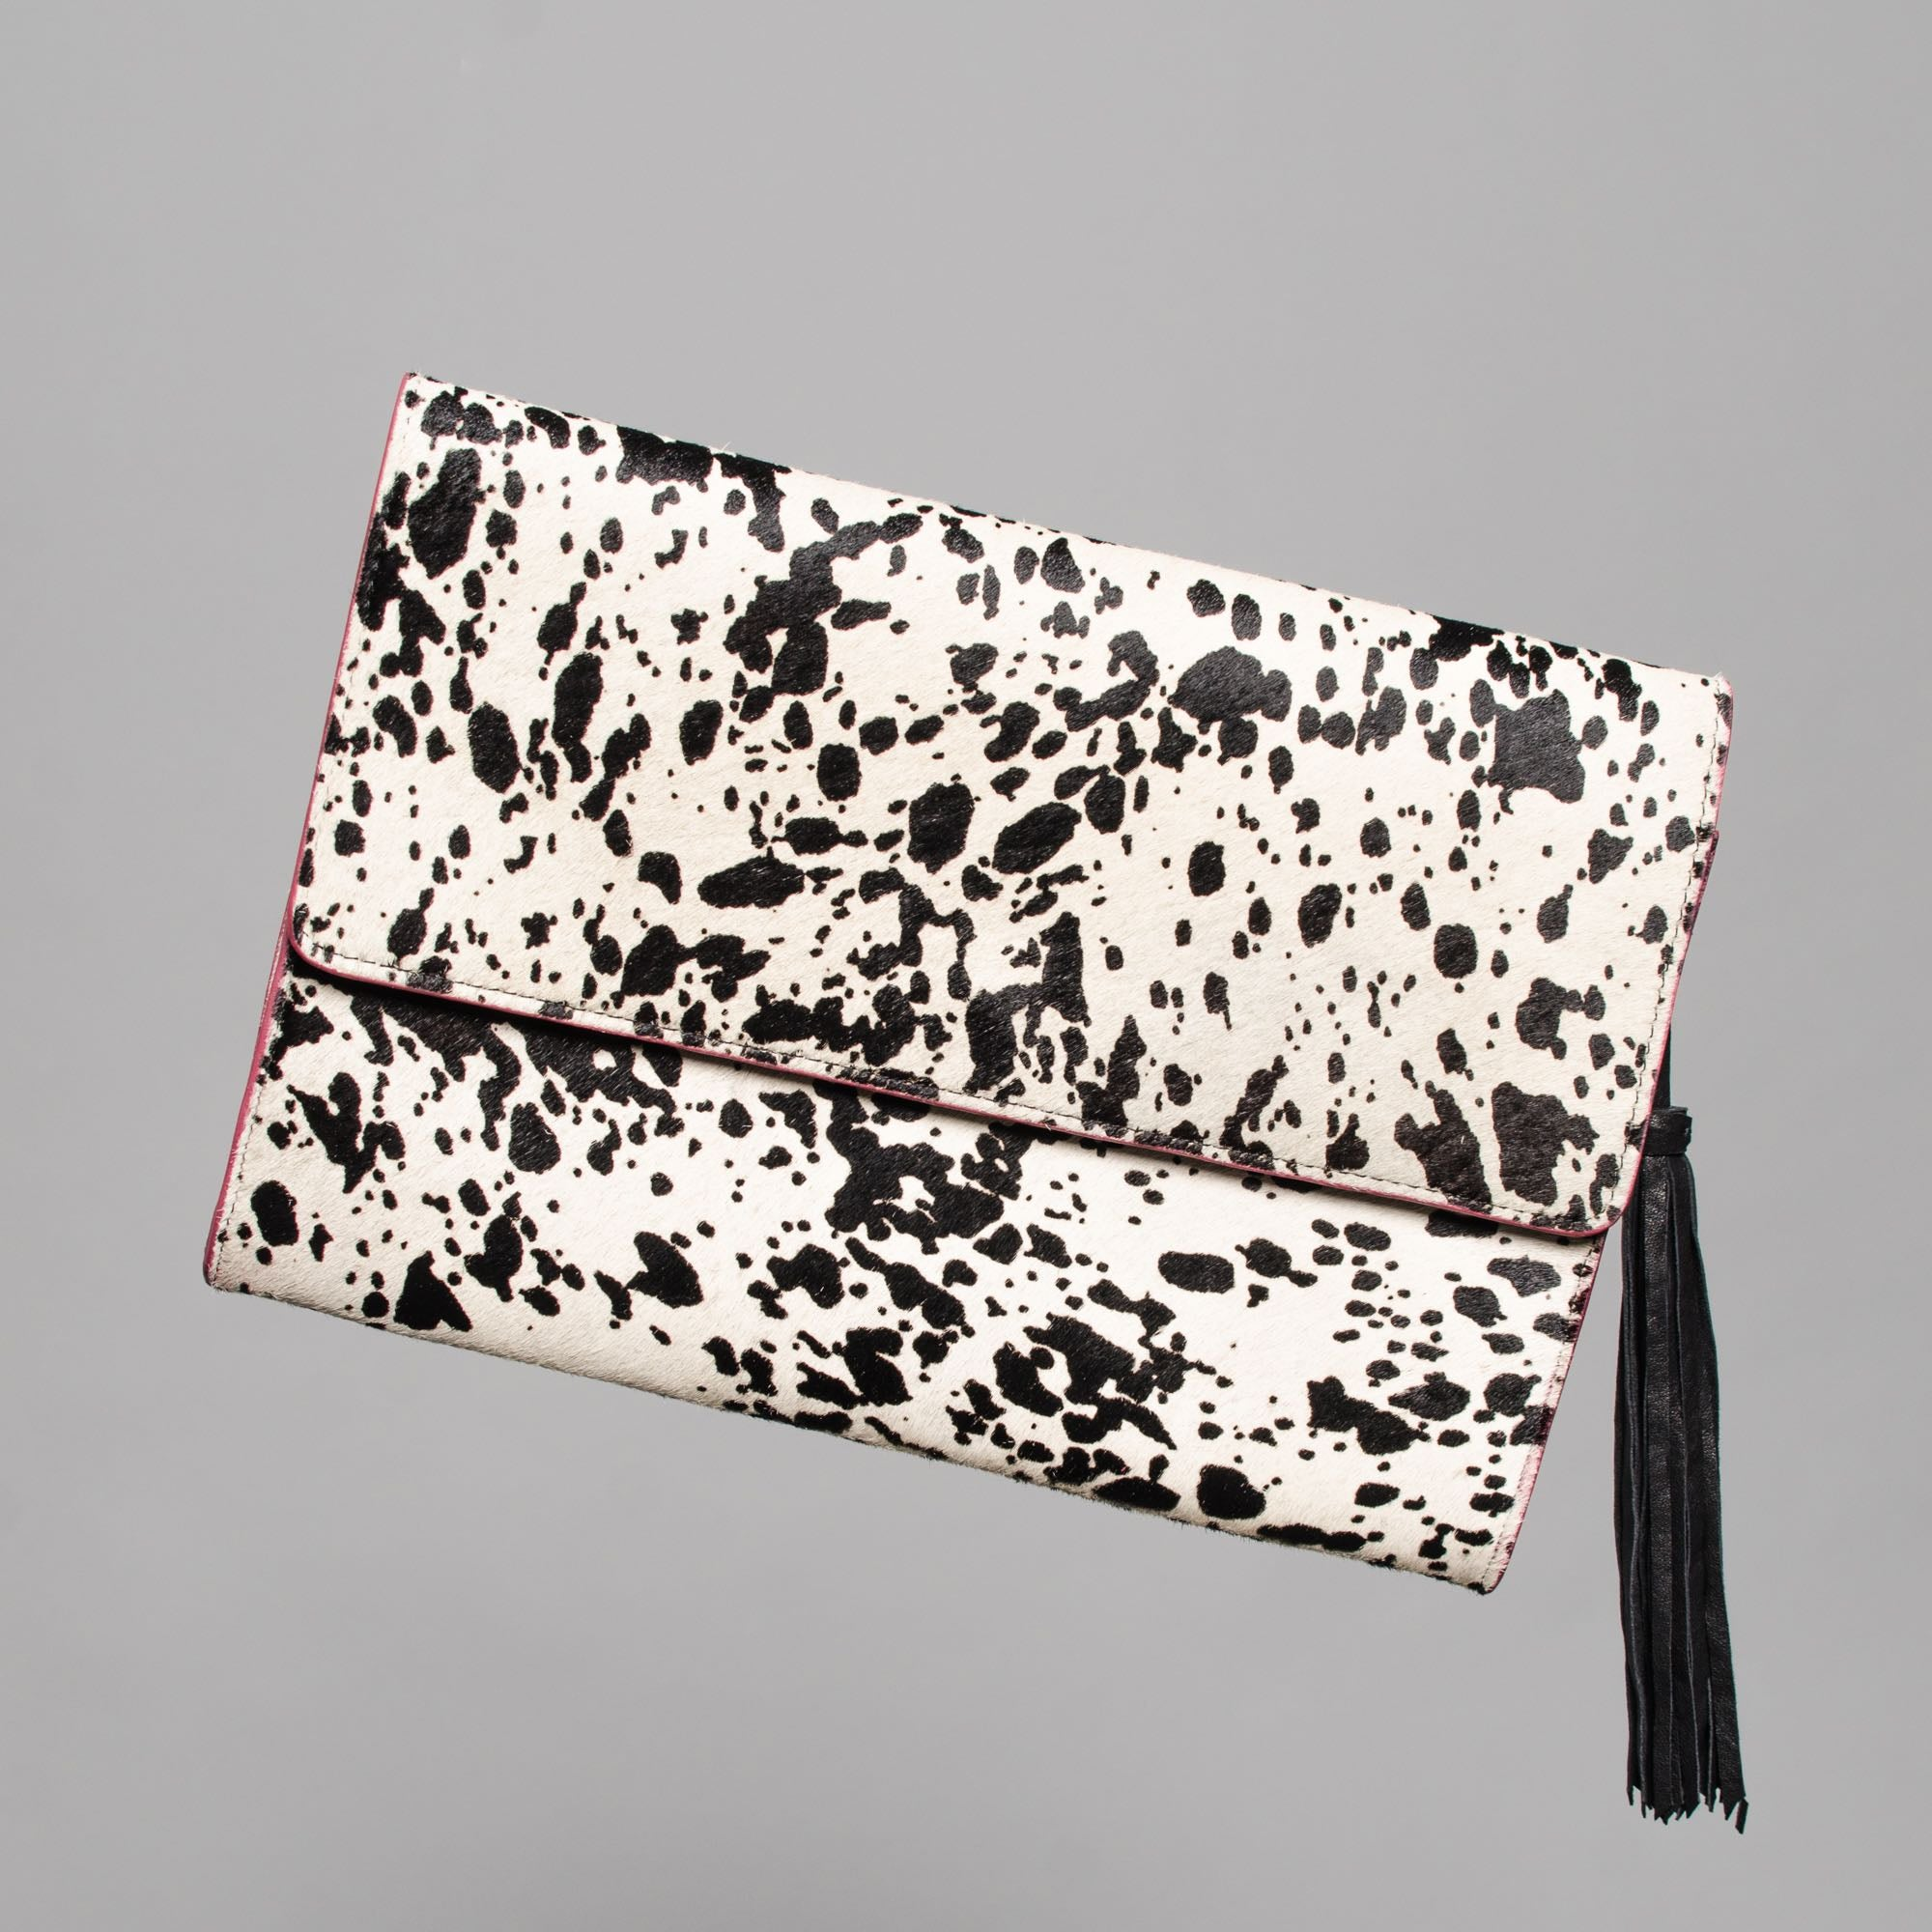 Leather Stencil Clutch Bag by Claudette in Montreal